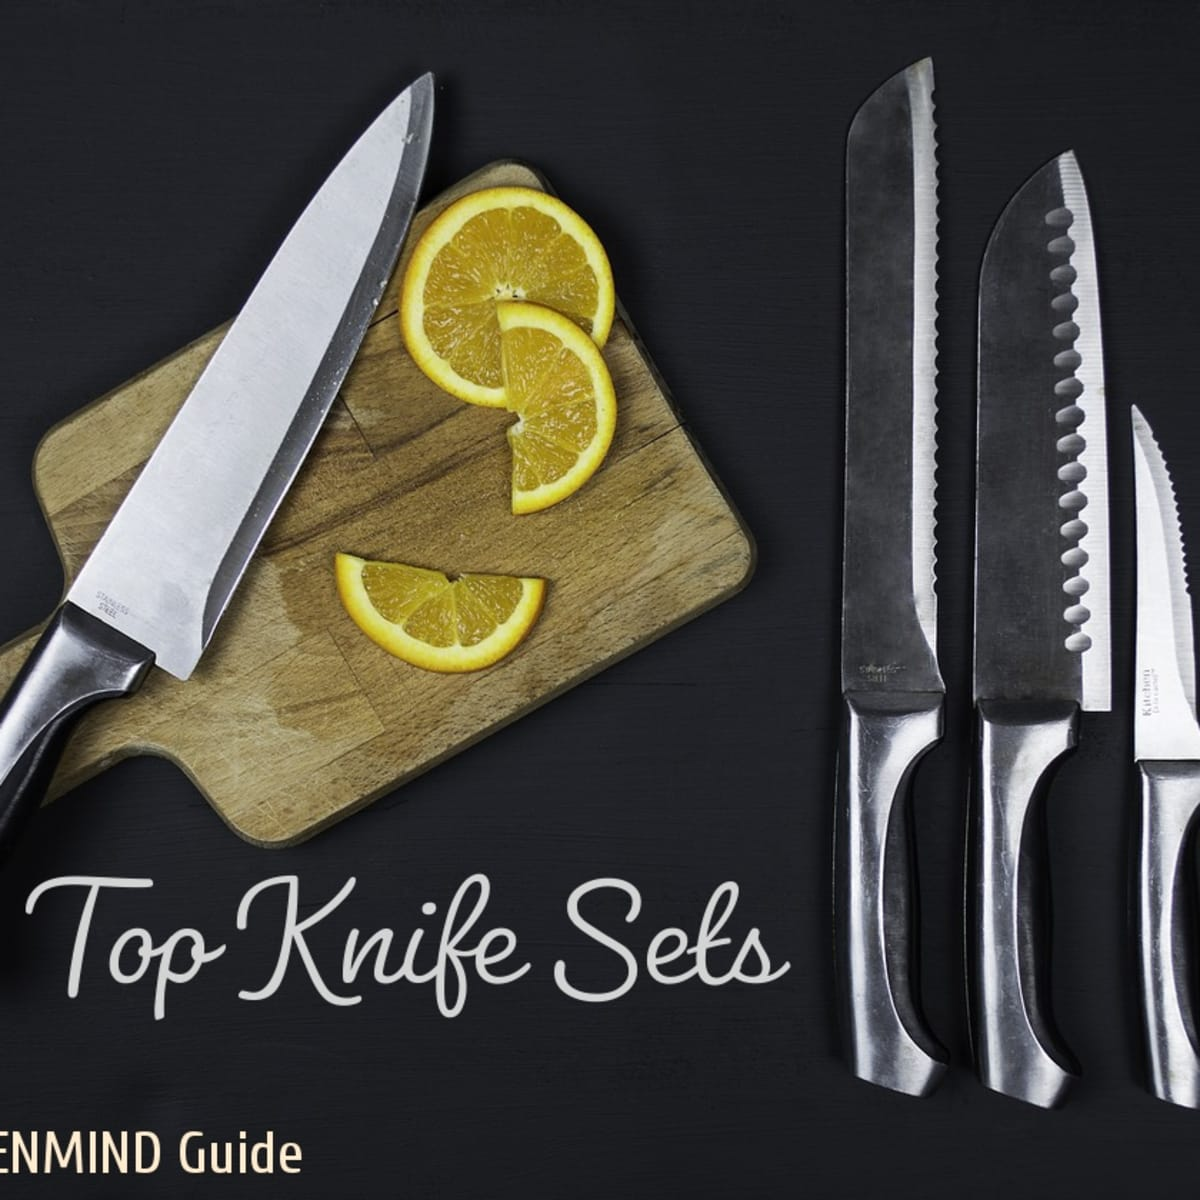 2019 S Top 10 Kitchen Knife Sets Delishably